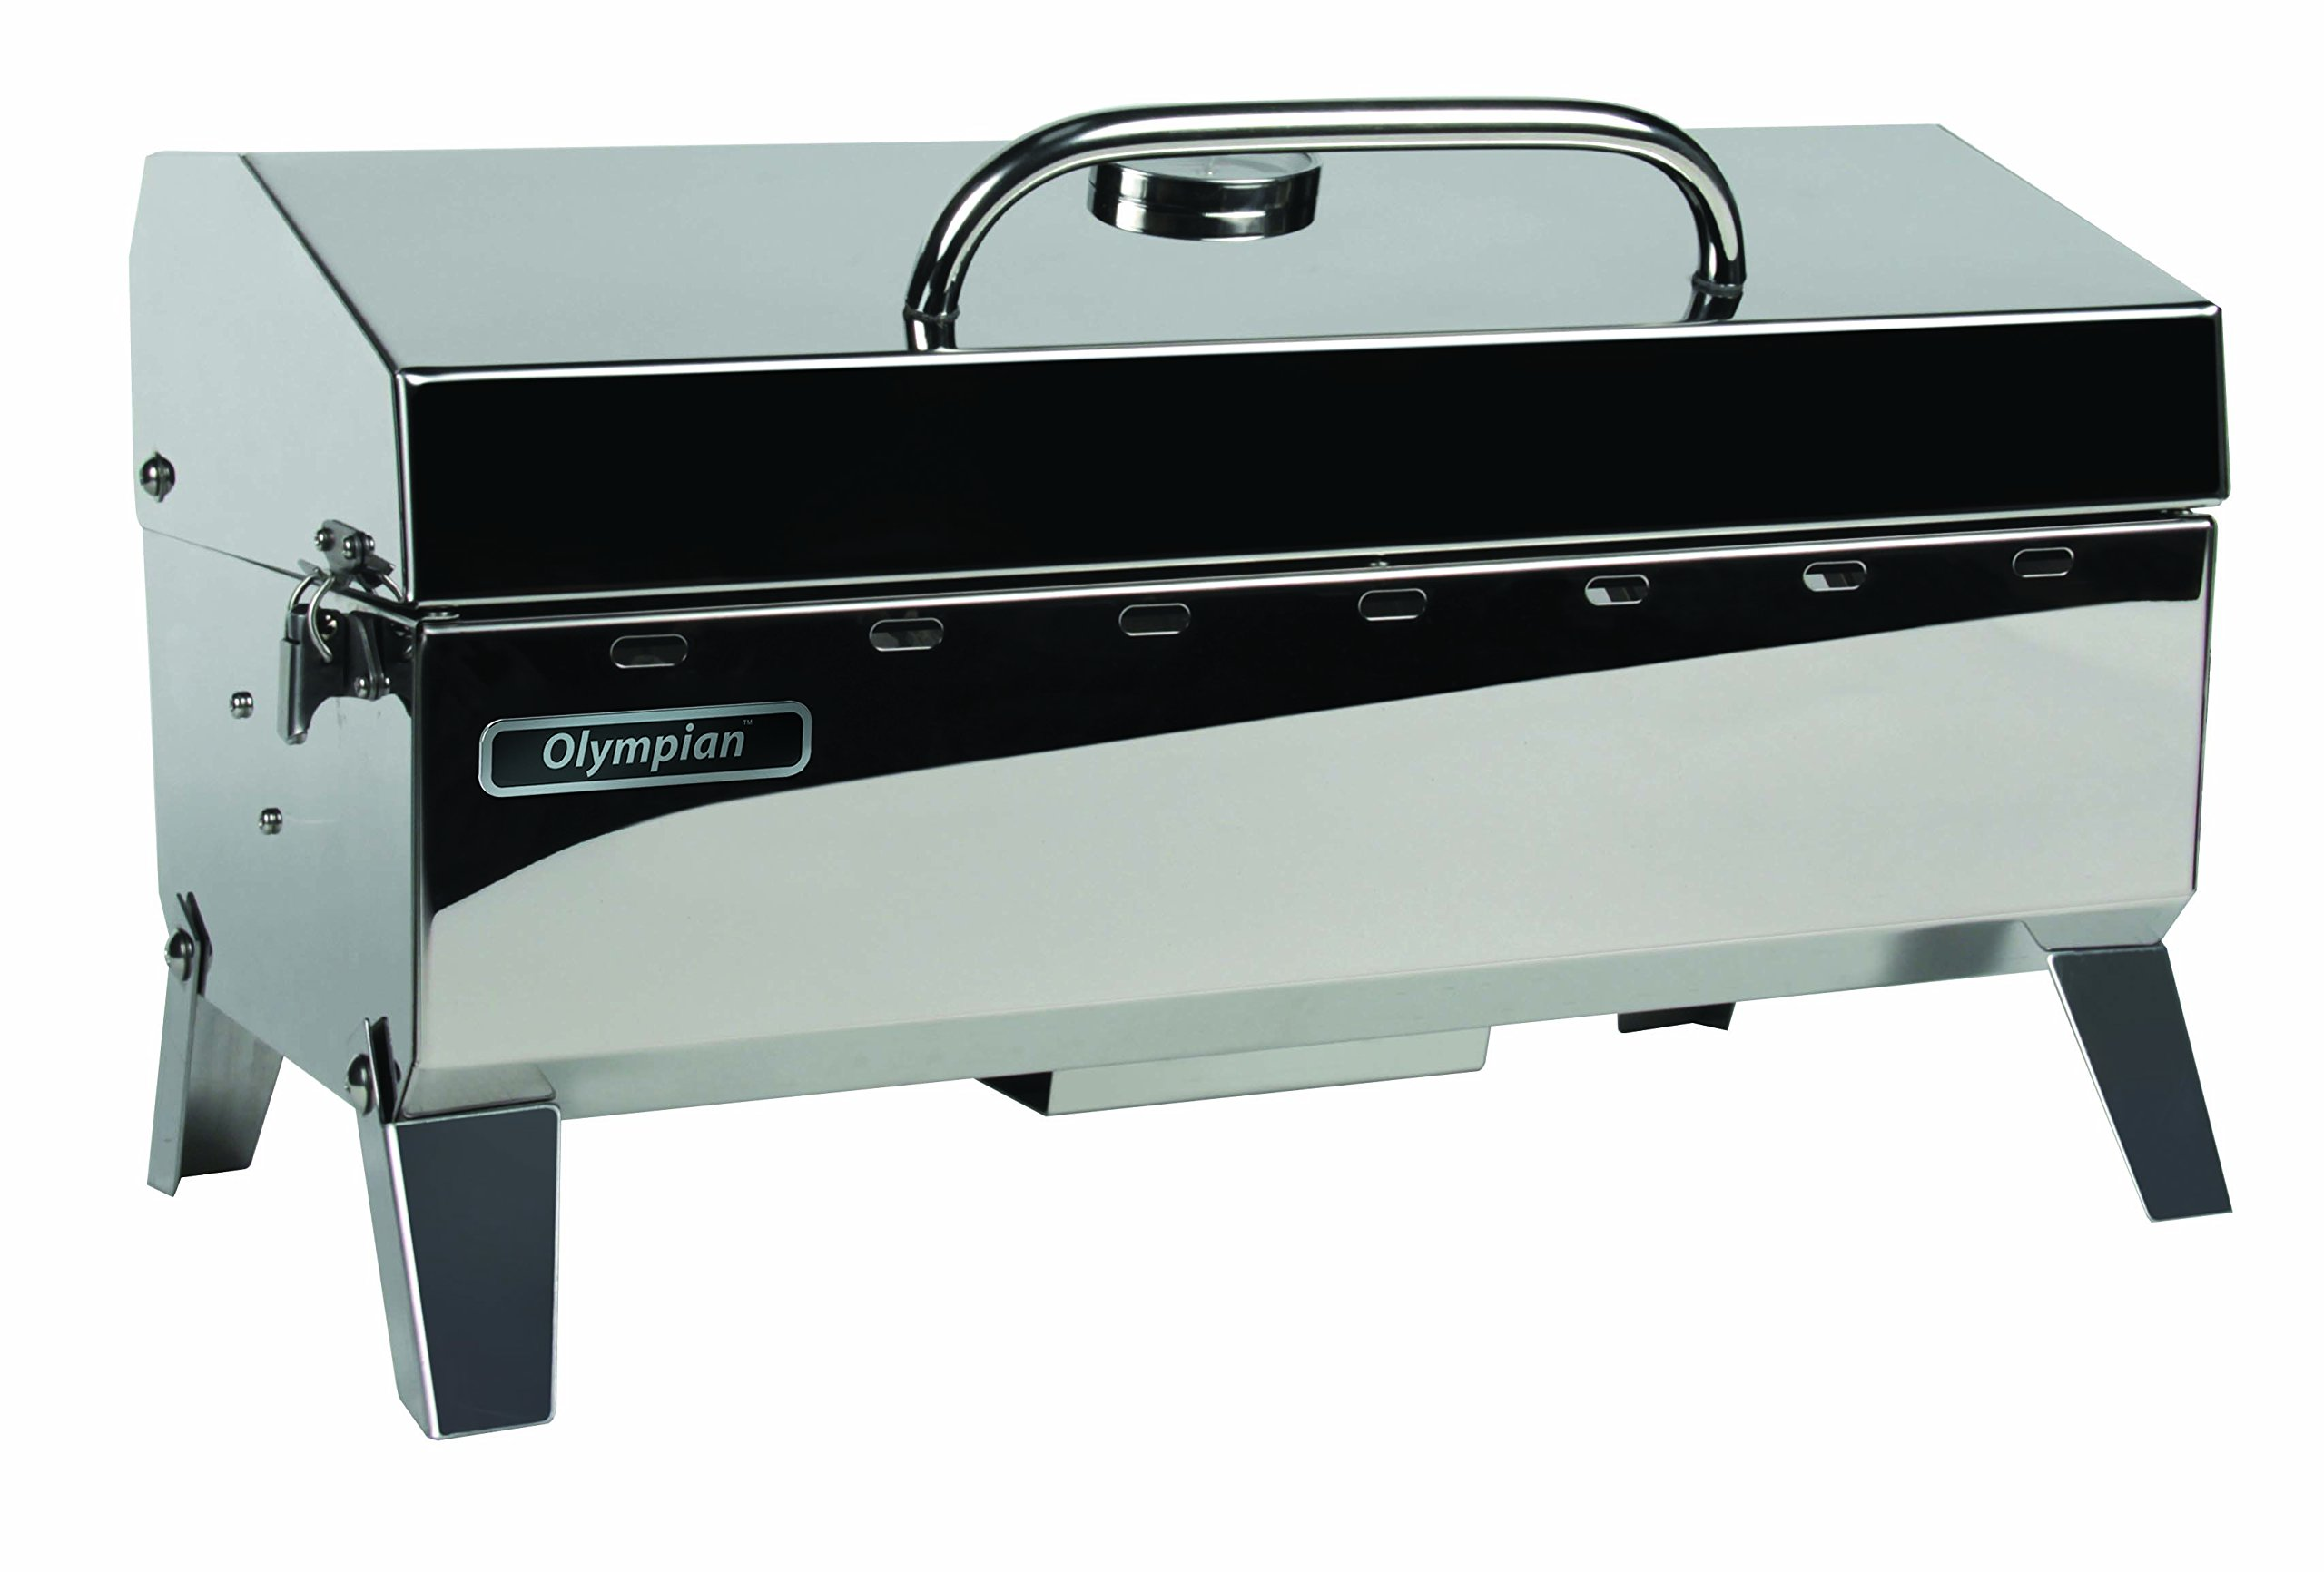 Camco Olympian 4500 Stainless Steel Portable Gas Grill - Connects To 1 lb Disposable Propane Bottle, Integrated Folding Tabletop Legs (57251)